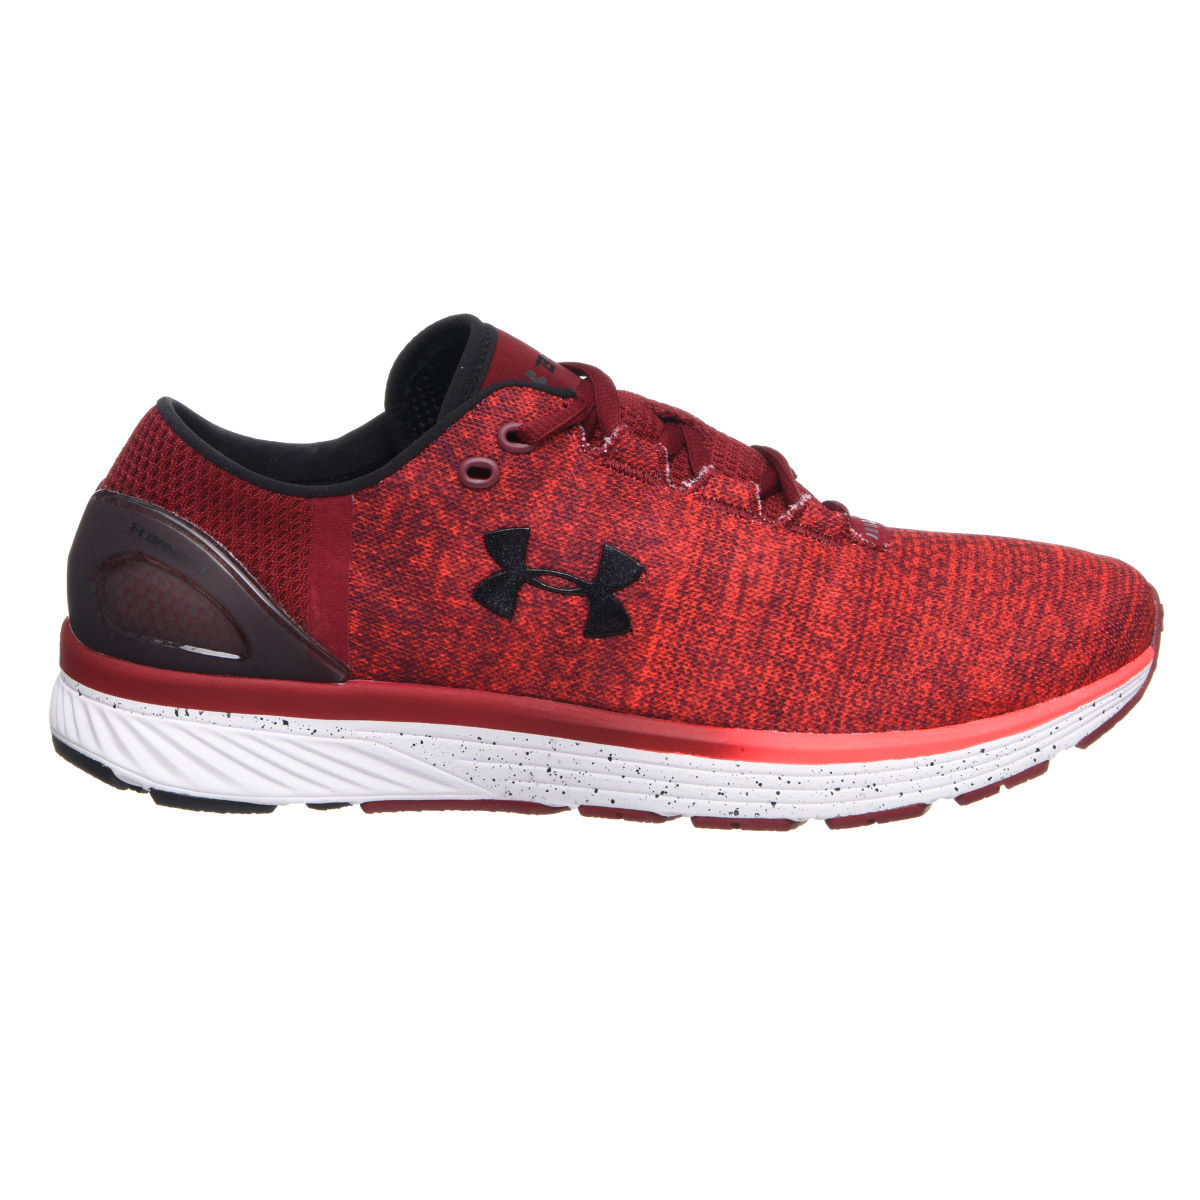 Chaussures Under Armour Charged Bandit 3 Run - UK 9 MARATHON RED